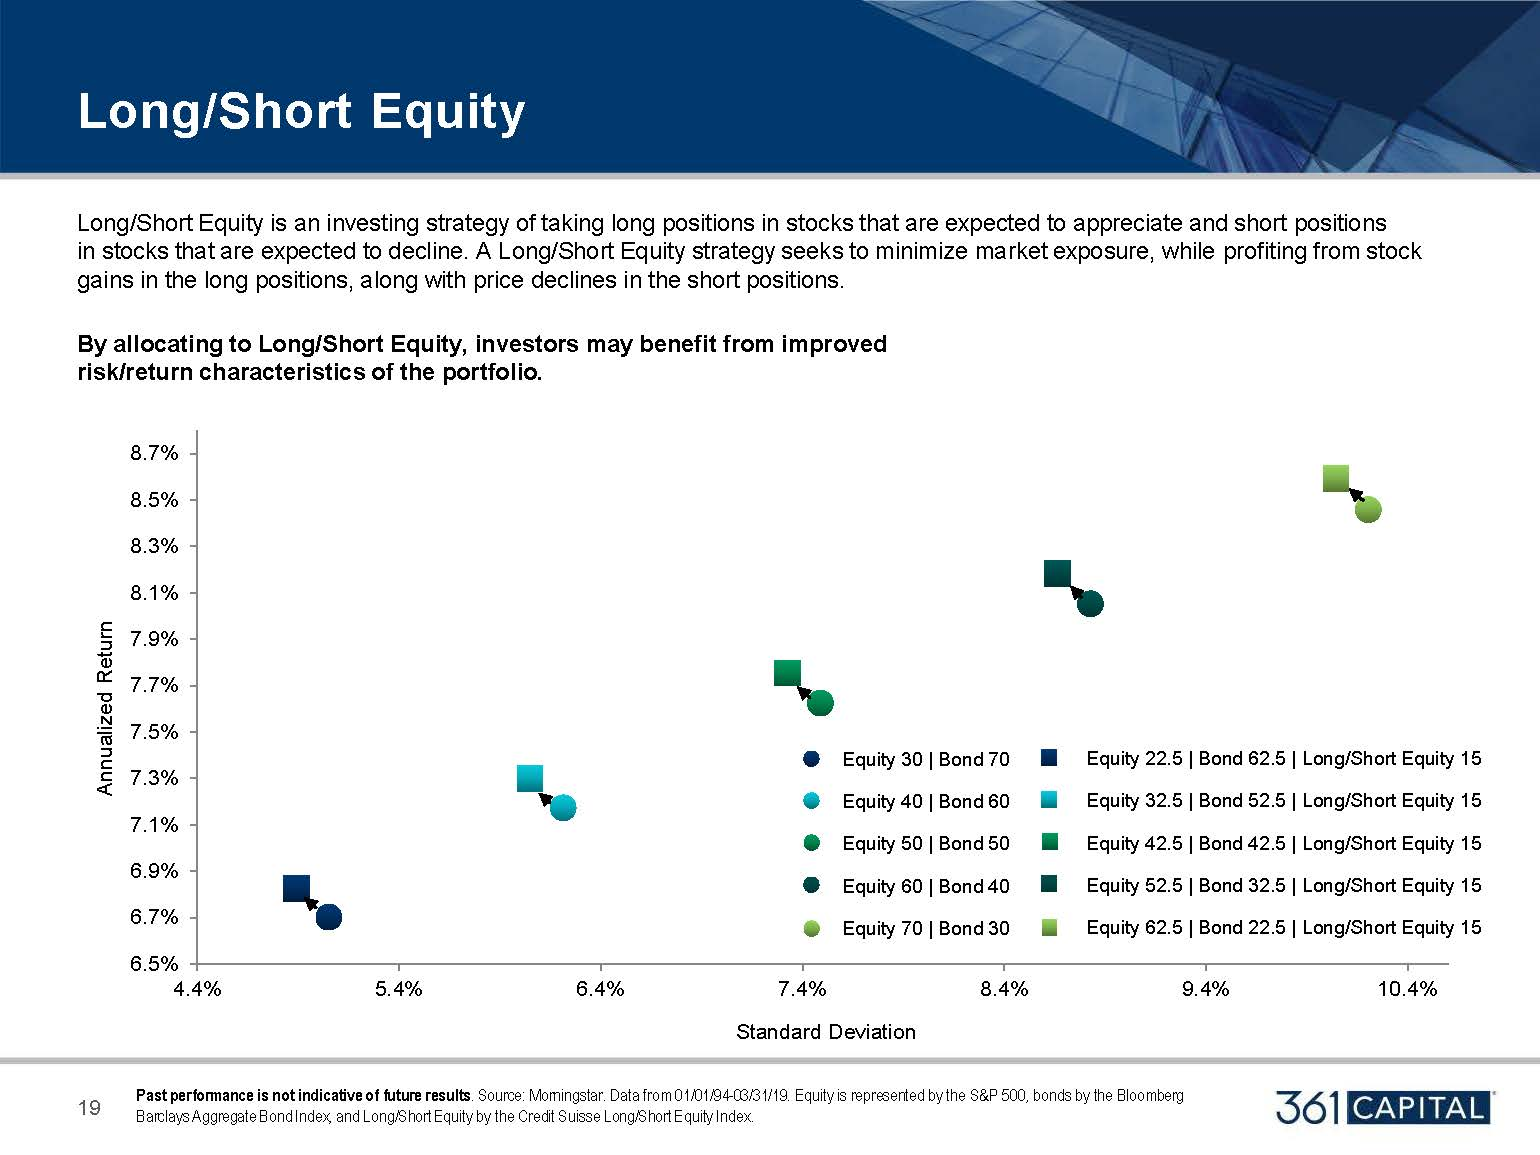 Long/Short Equity is an investing strategy of taking long positions in stocks that are expect to appreciate and short position in stock that are expected to decline